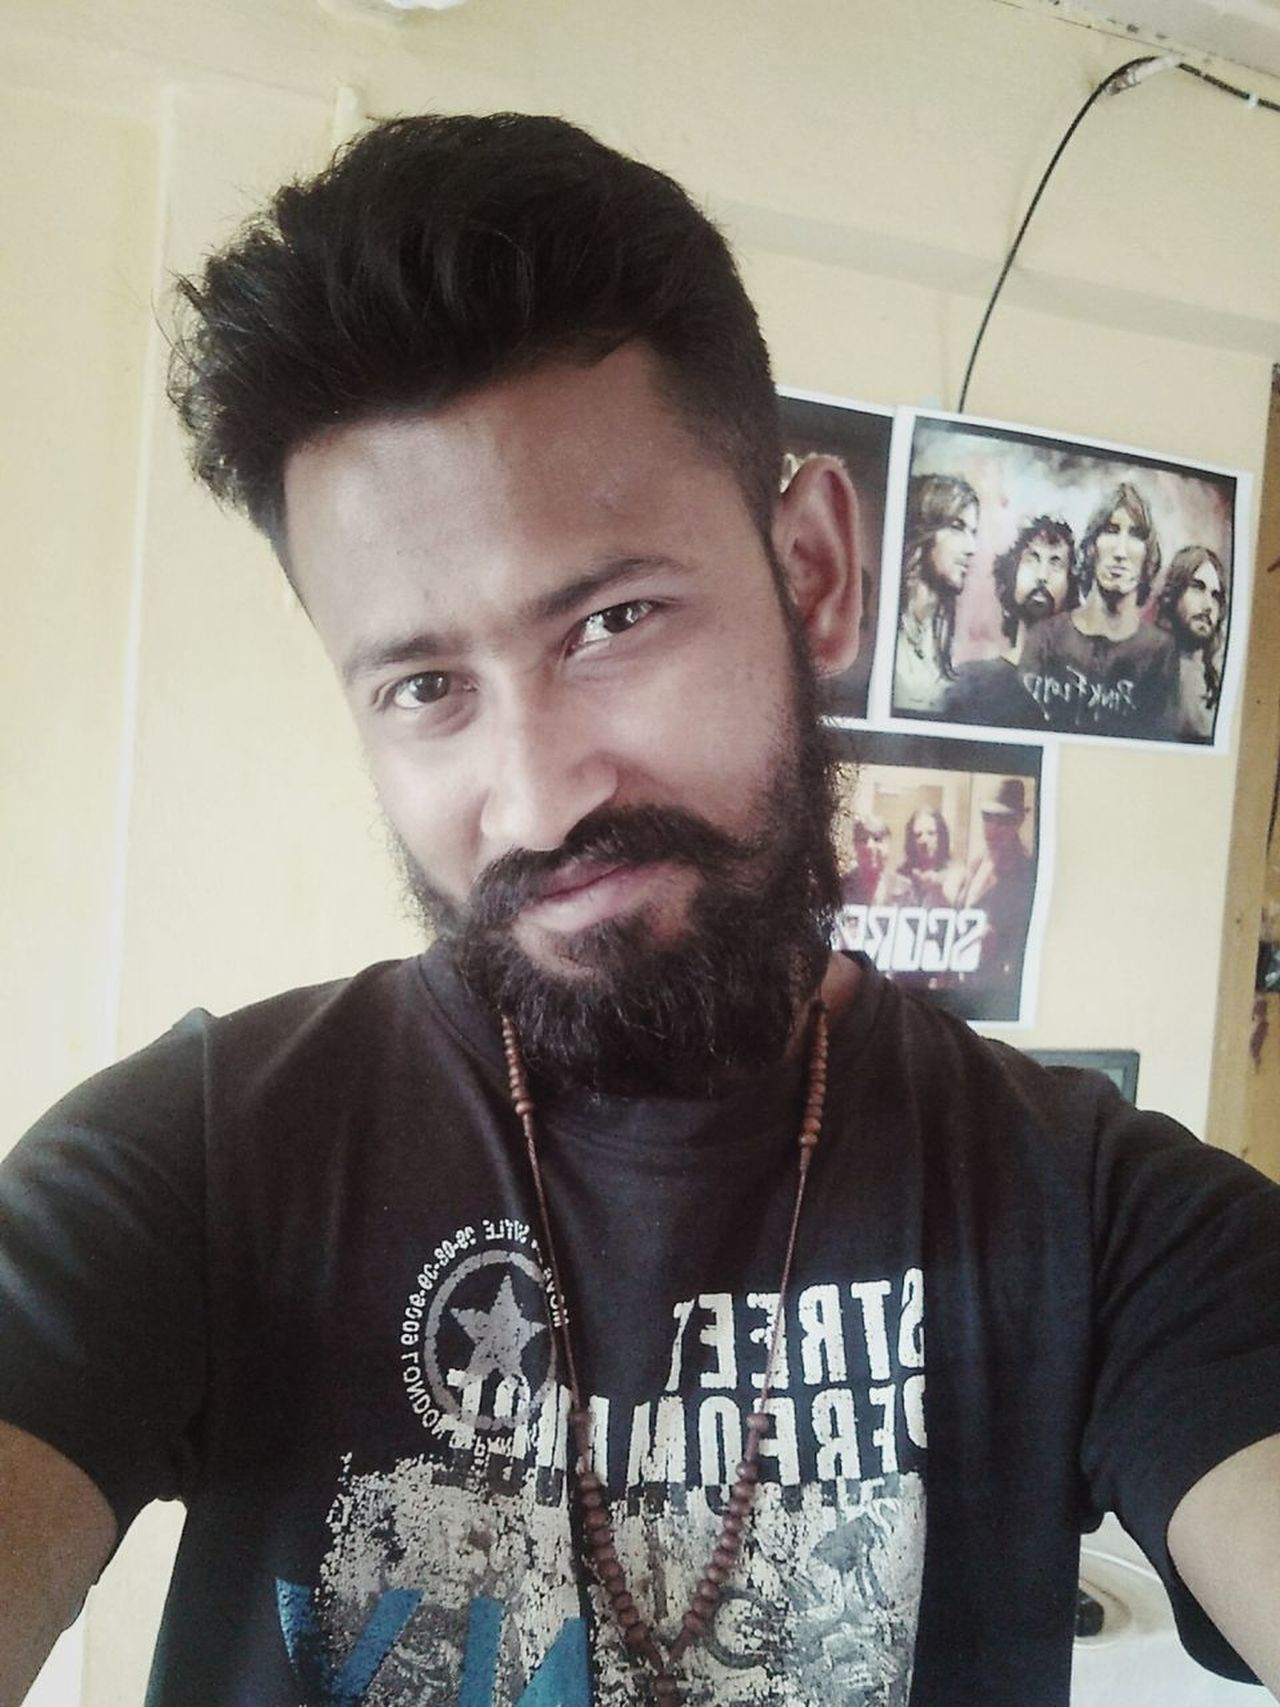 One Man Only Only Men One Person Portrait Looking At Camera Beard Men Front View Personality  BeingMyself Dashing Handsome Attitude Casual Clothing Indoors  T-shirt One Young Man Only First Eyeem Photo